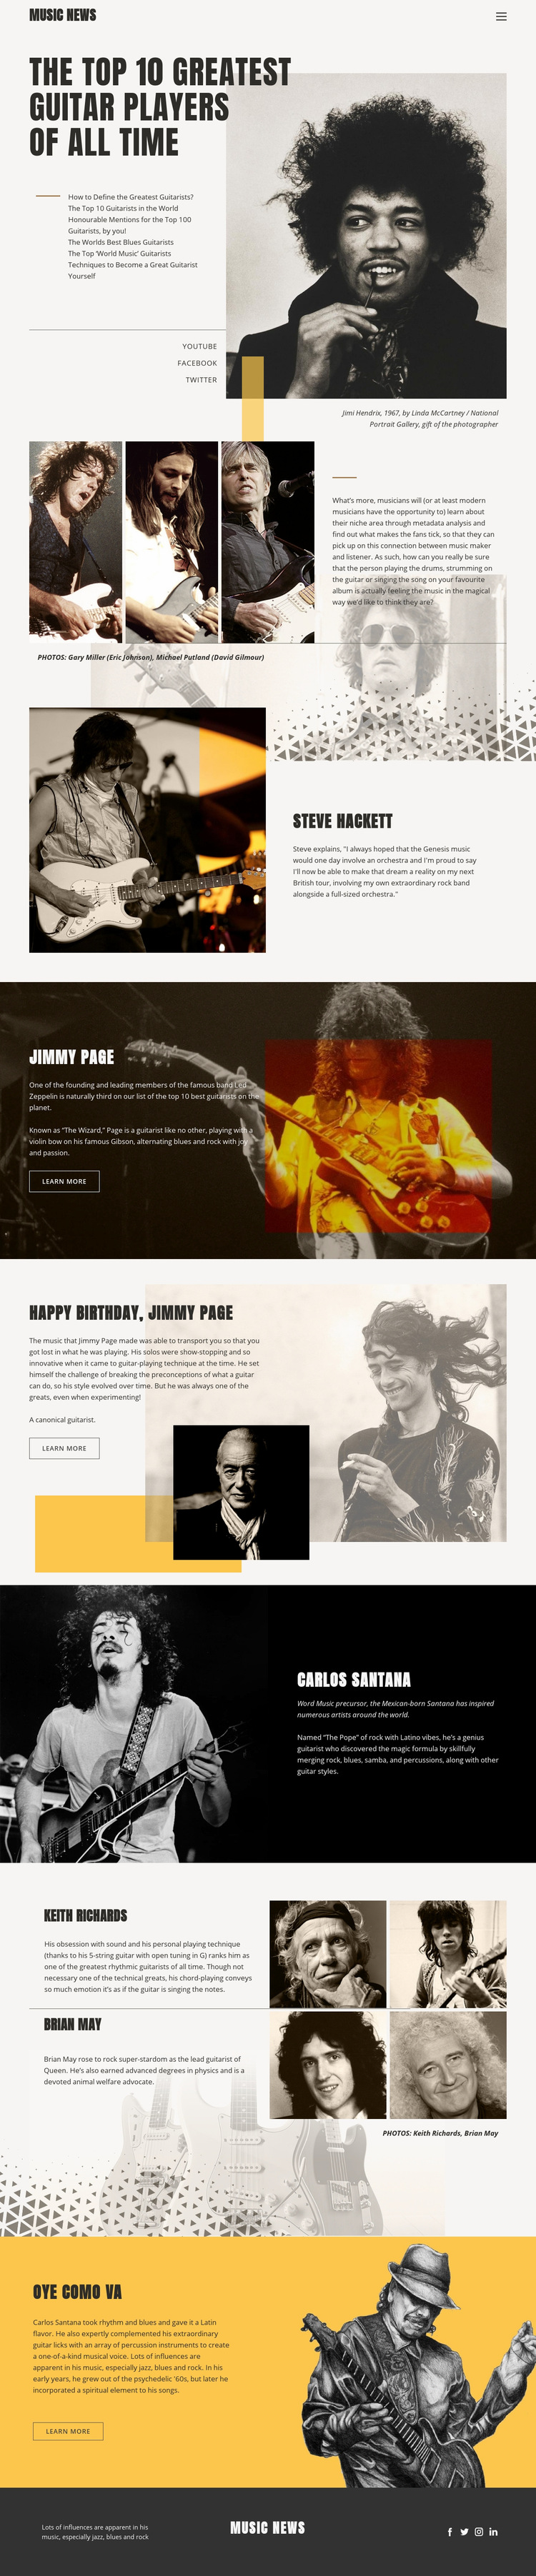 The Top Guitar Players Web Page Design